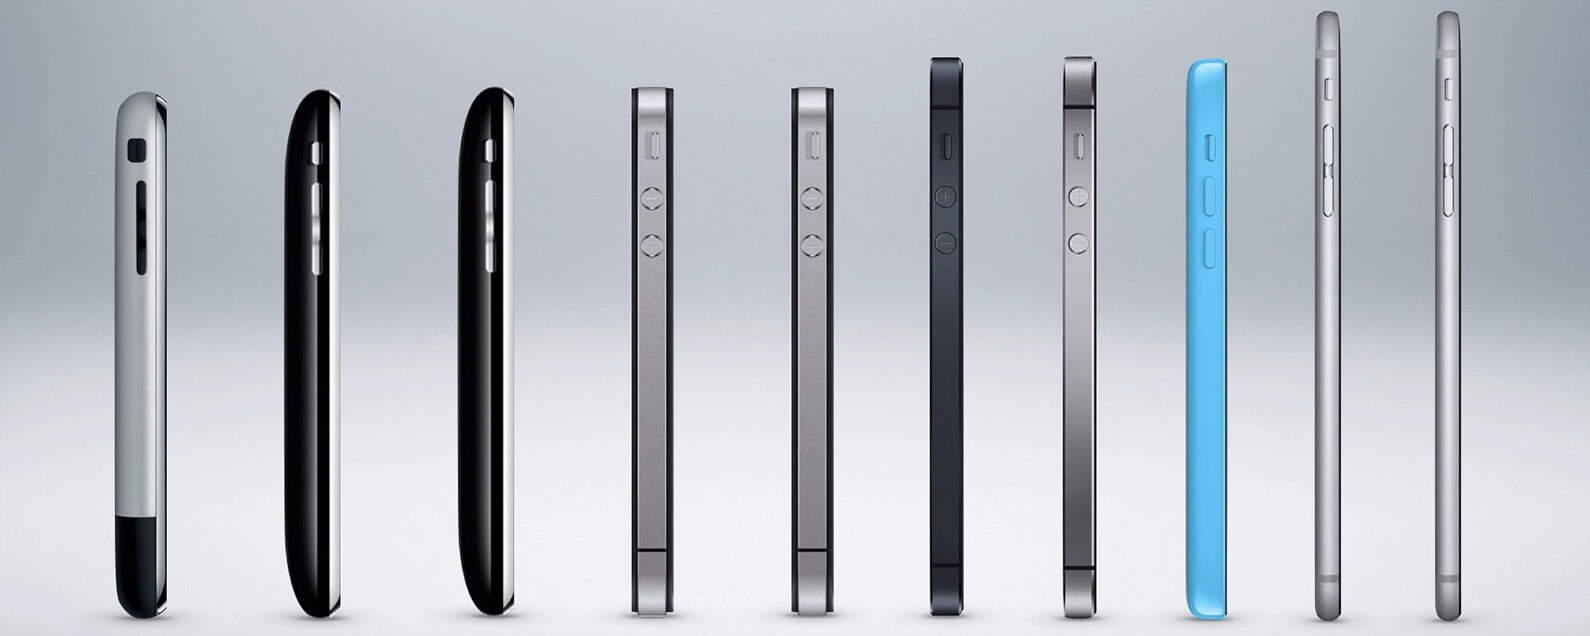 Different models of i-phone